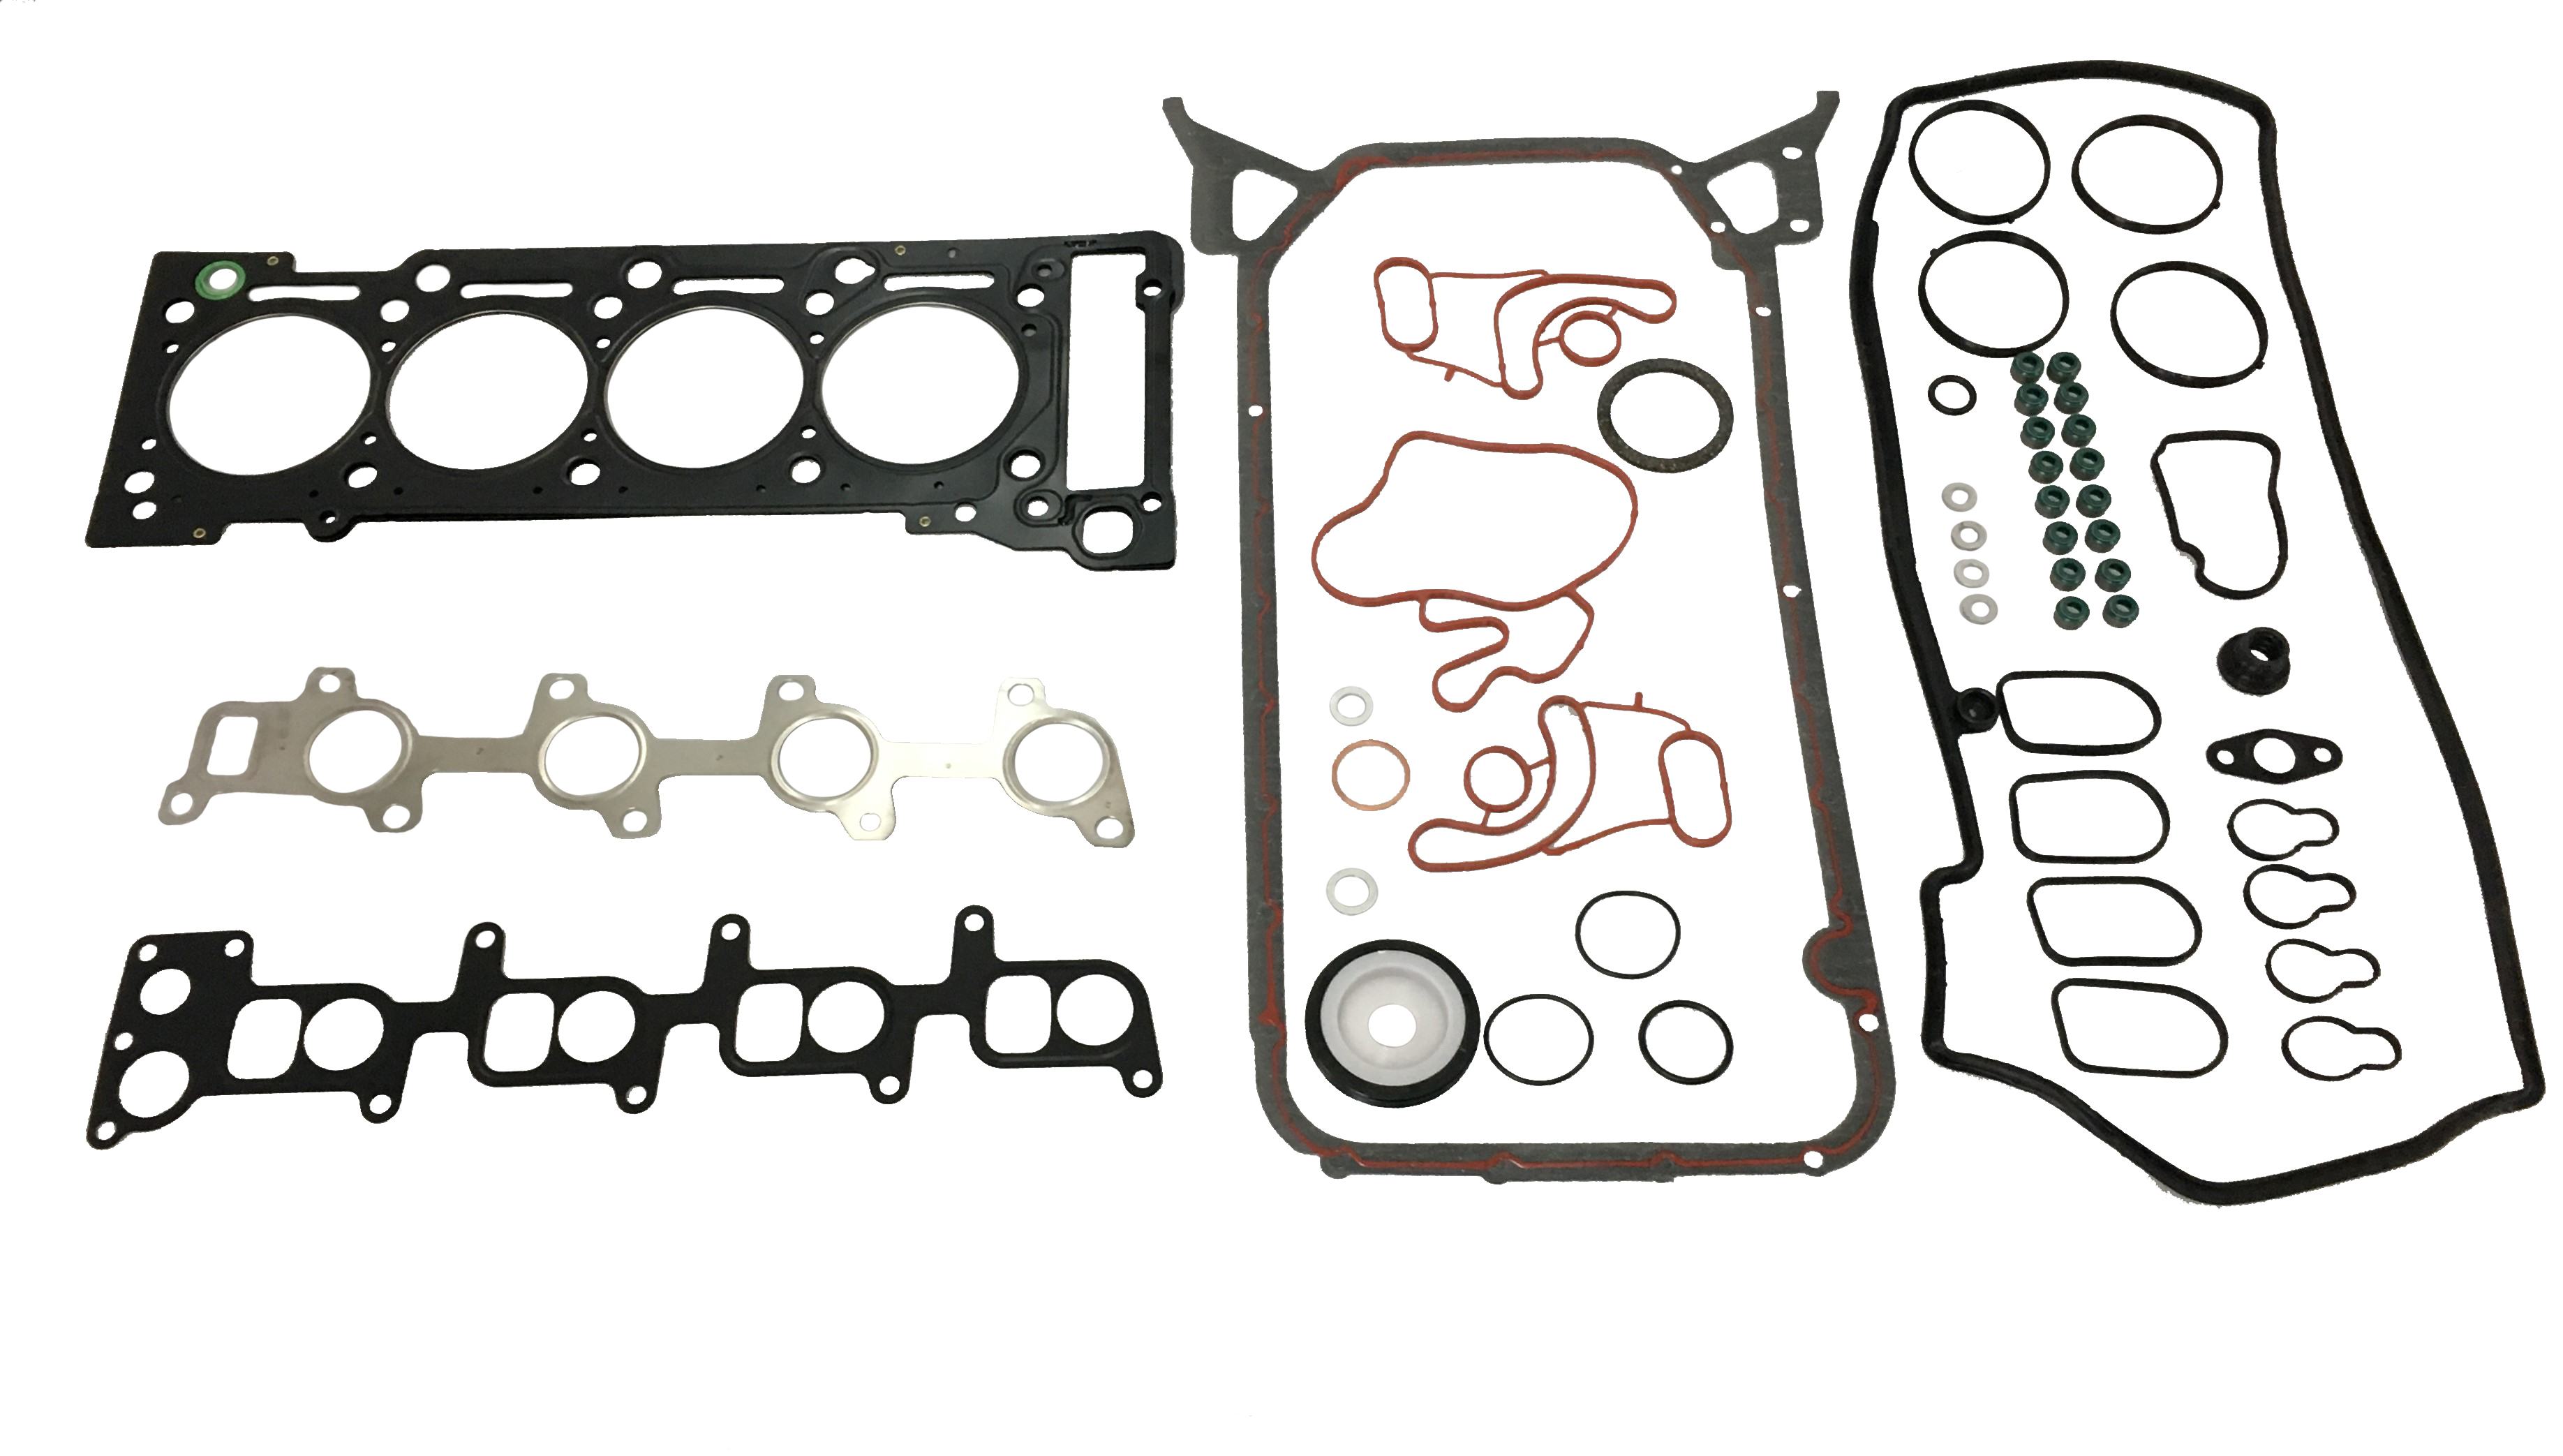 Gasket set cylinder head gasket Mercedes-Benz Sprinter 2.2 CDI 646.980 NEW